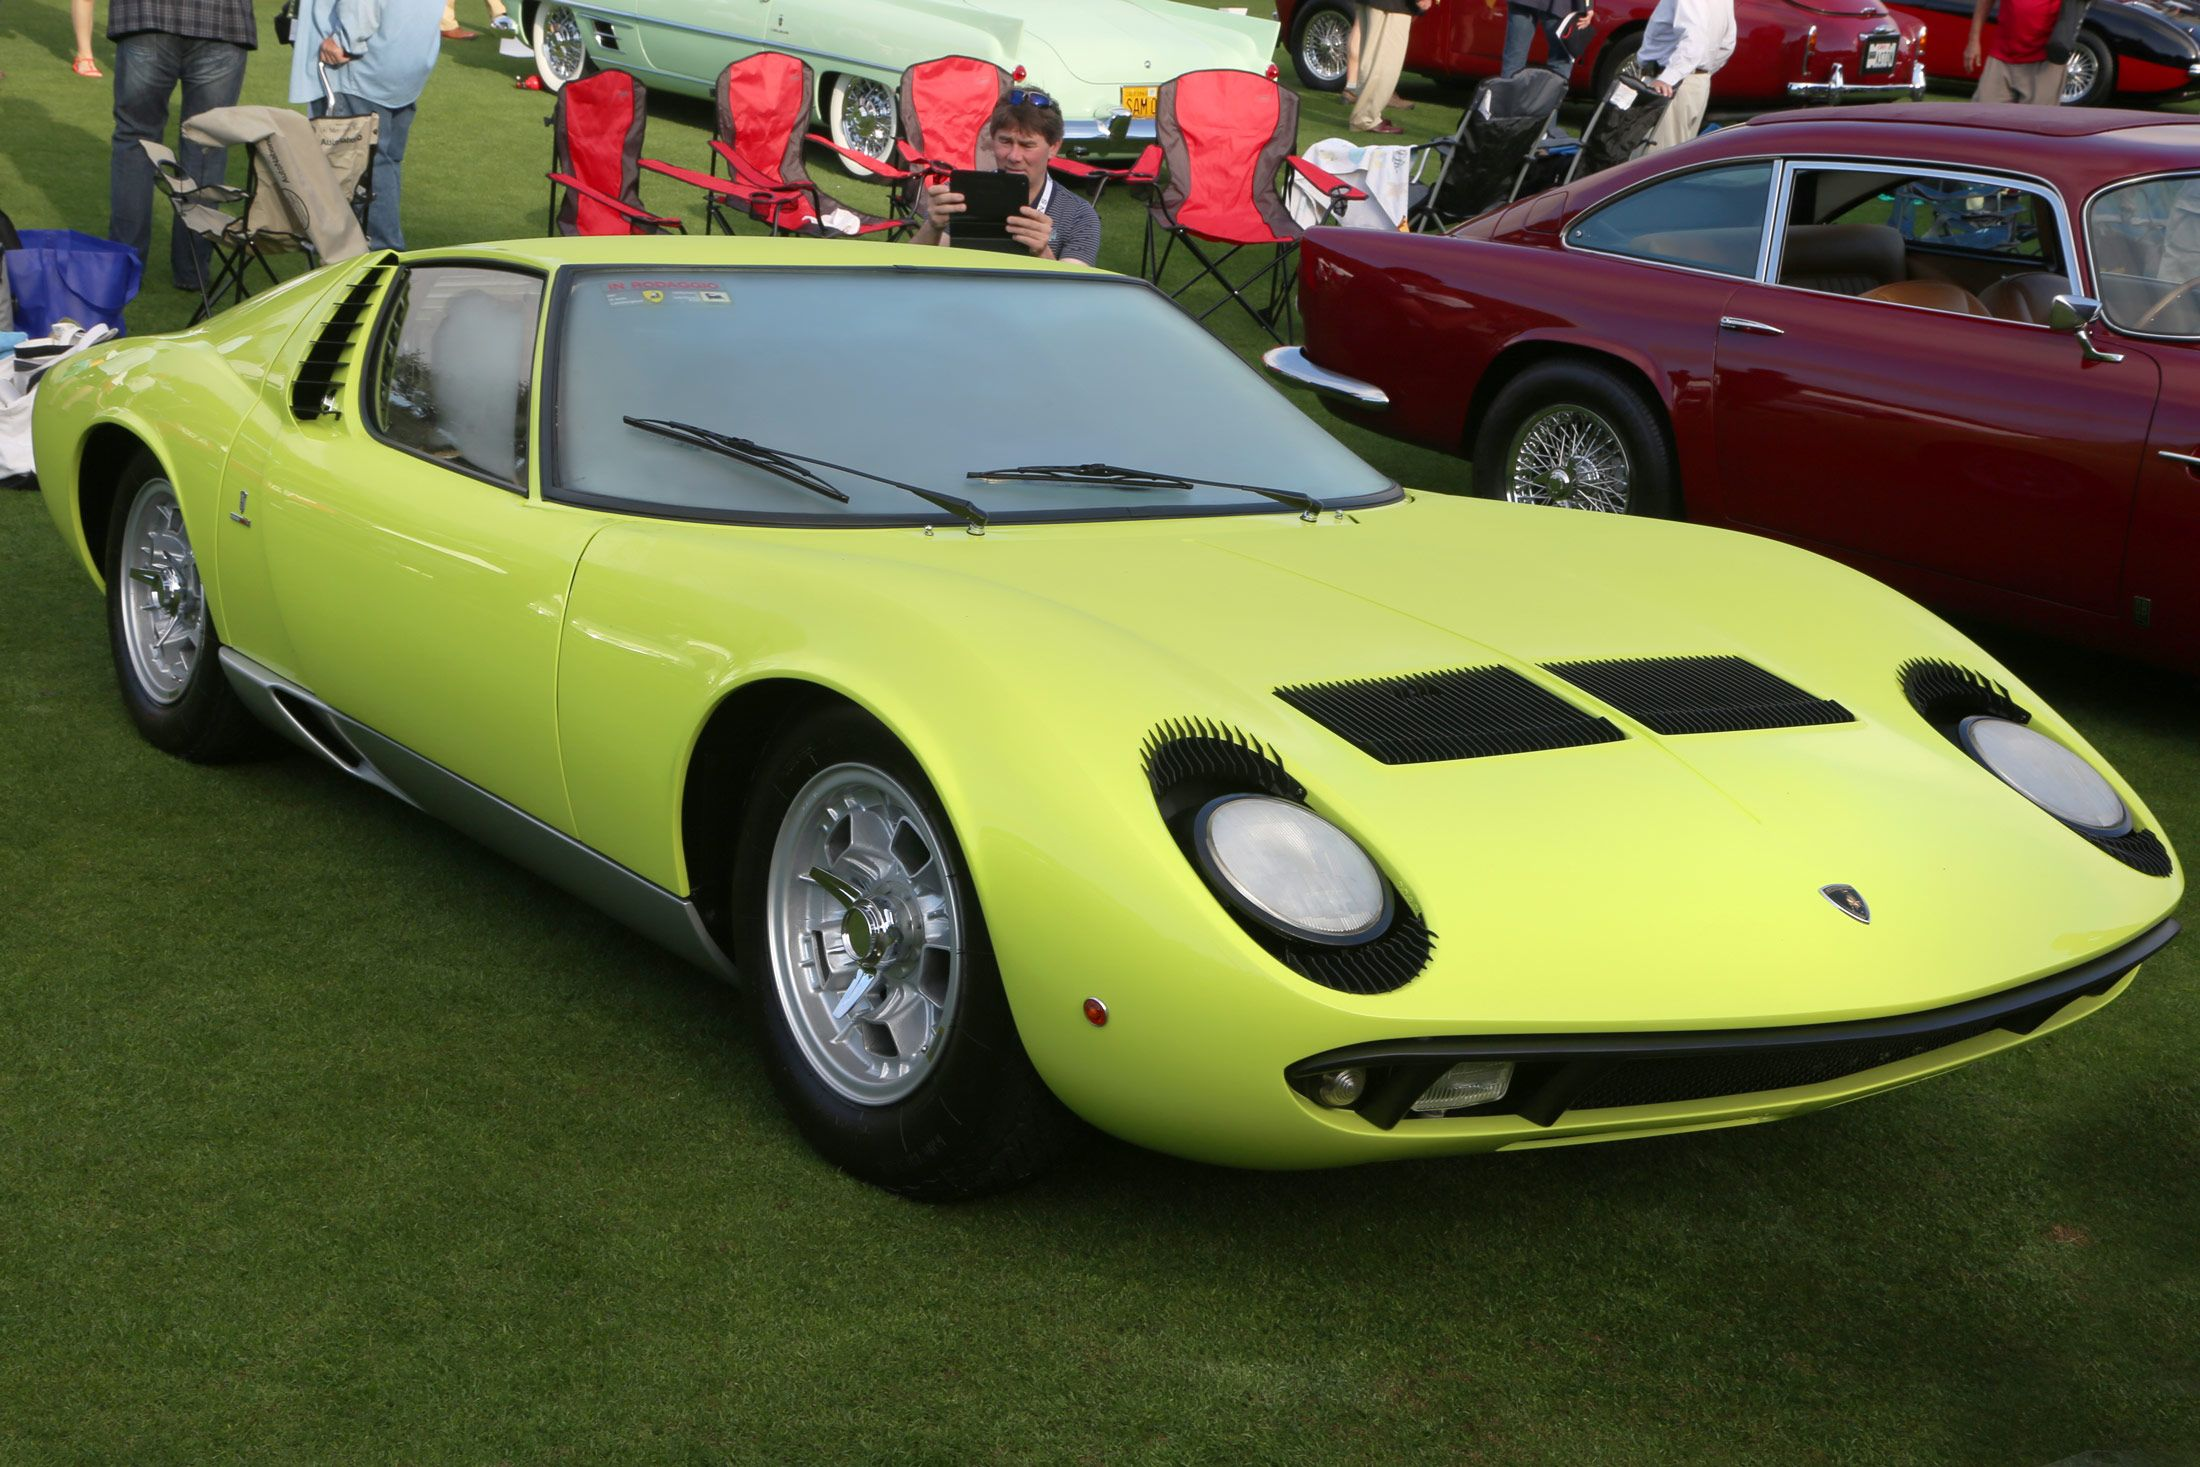 Report: Vintage Car Values Are Boosted by Social Media   Cars ...